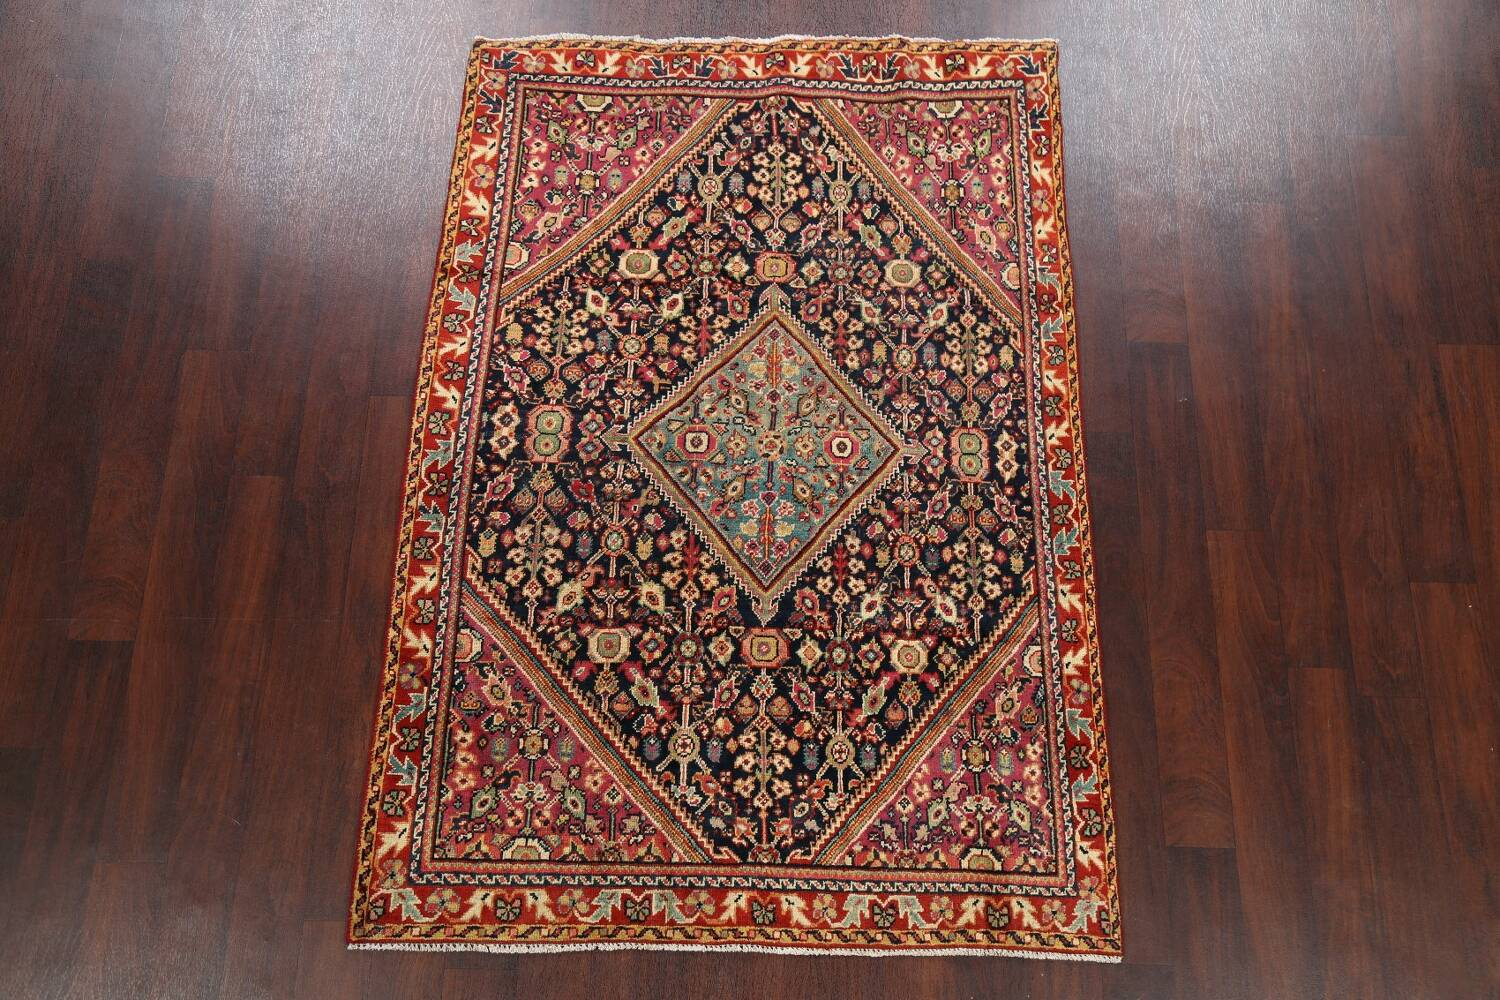 100% Vegetable Dye Antique Sultanabad Persian Area Rug 4x6 image 2